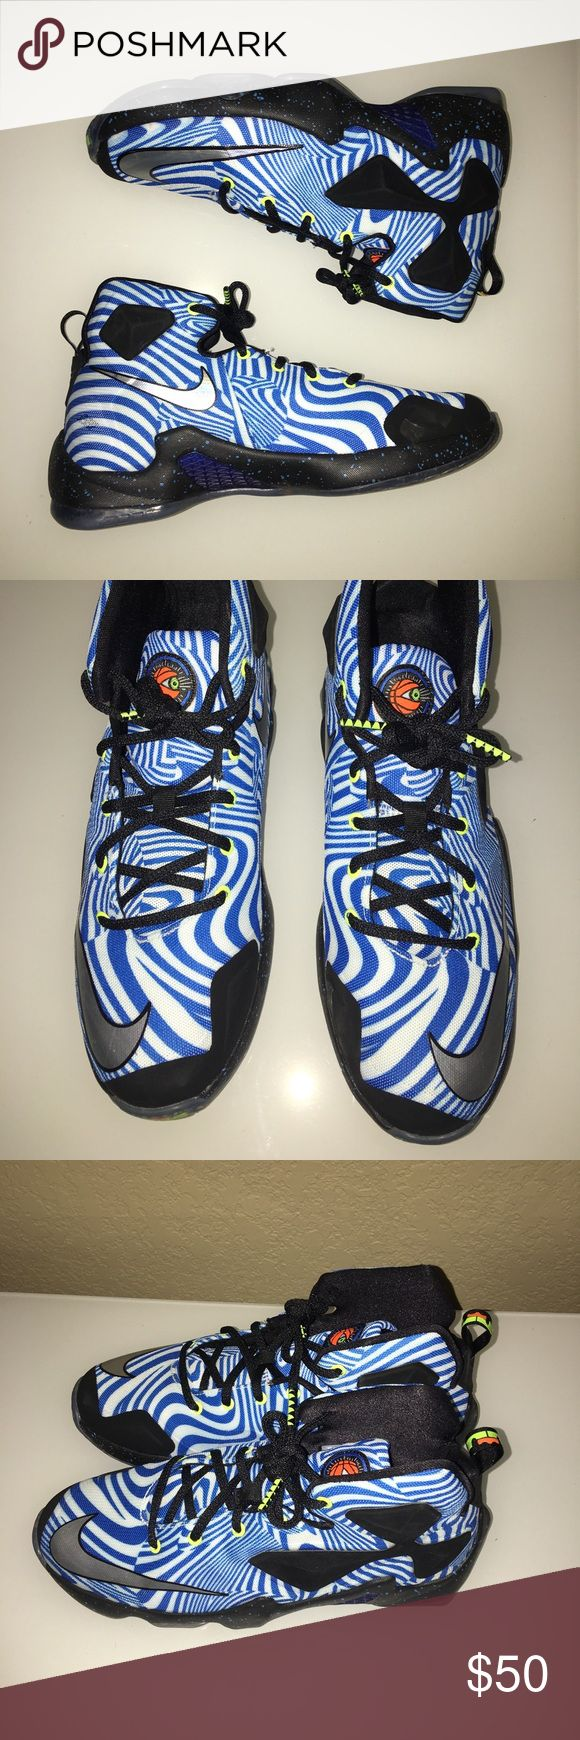 ⭐️PRICE ⬇️⭐️ LeBron James XIII 13 Nike Sneakers 7Y Like New. My son wore them 1 time and then said they were too small for him. Smoke free home. Nike Shoes Sneakers